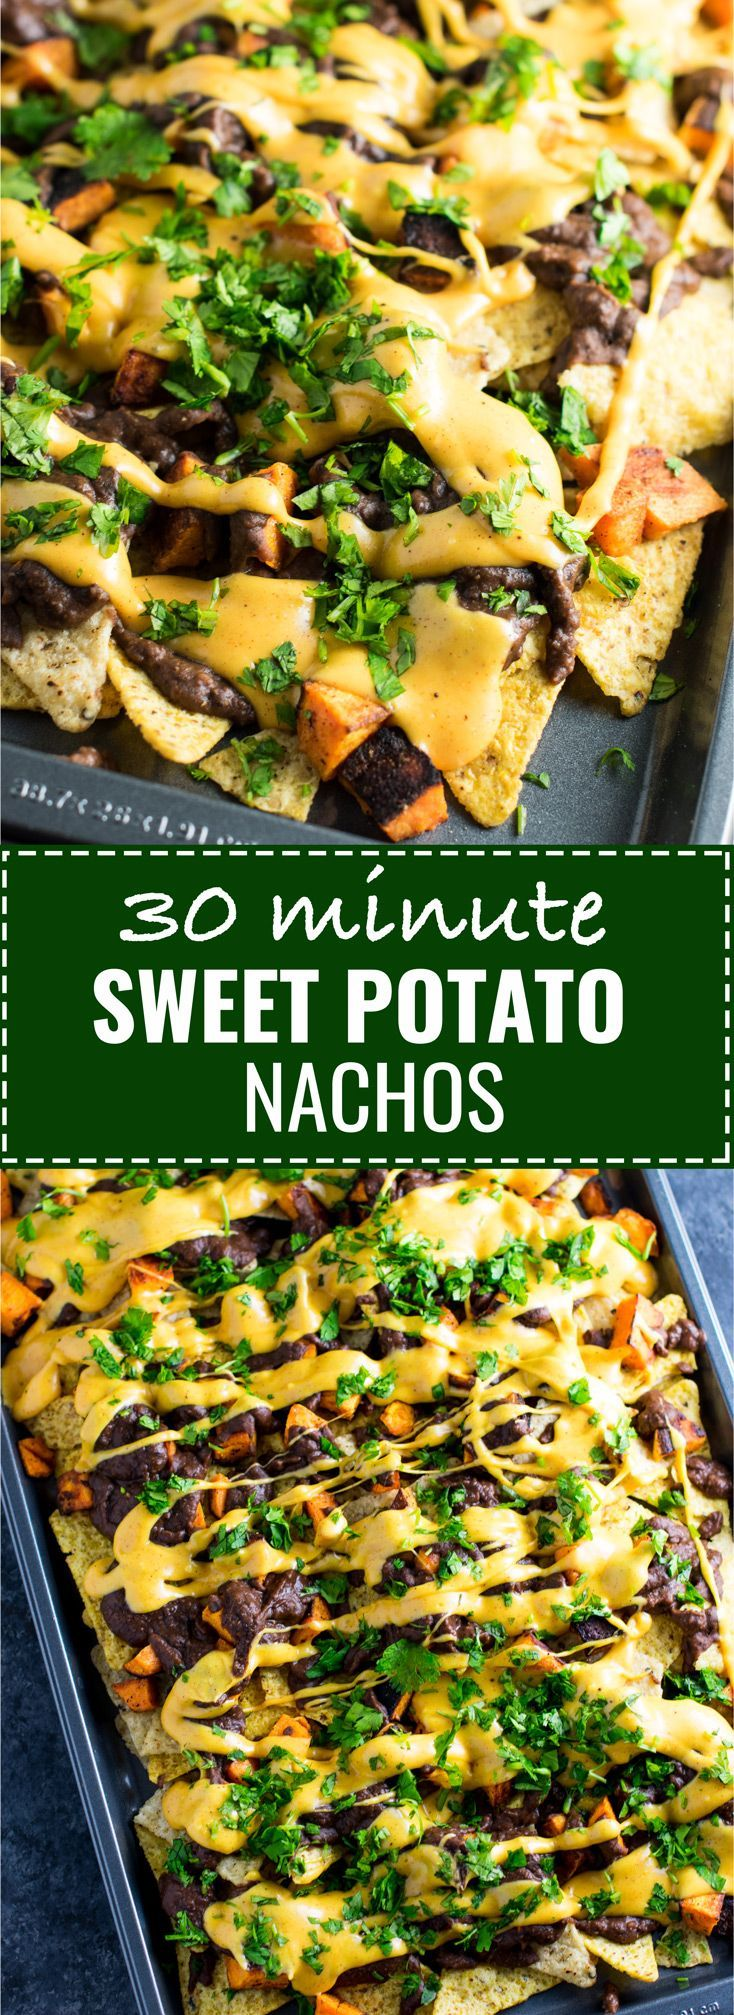 30 Minute Sweet Potato Refried Bean Nachos recipe with homemade cheese sauce. A meal that looks fancy but requires just half an hour to make! #vegetarian #sweetpotatonachos #30minutemeals